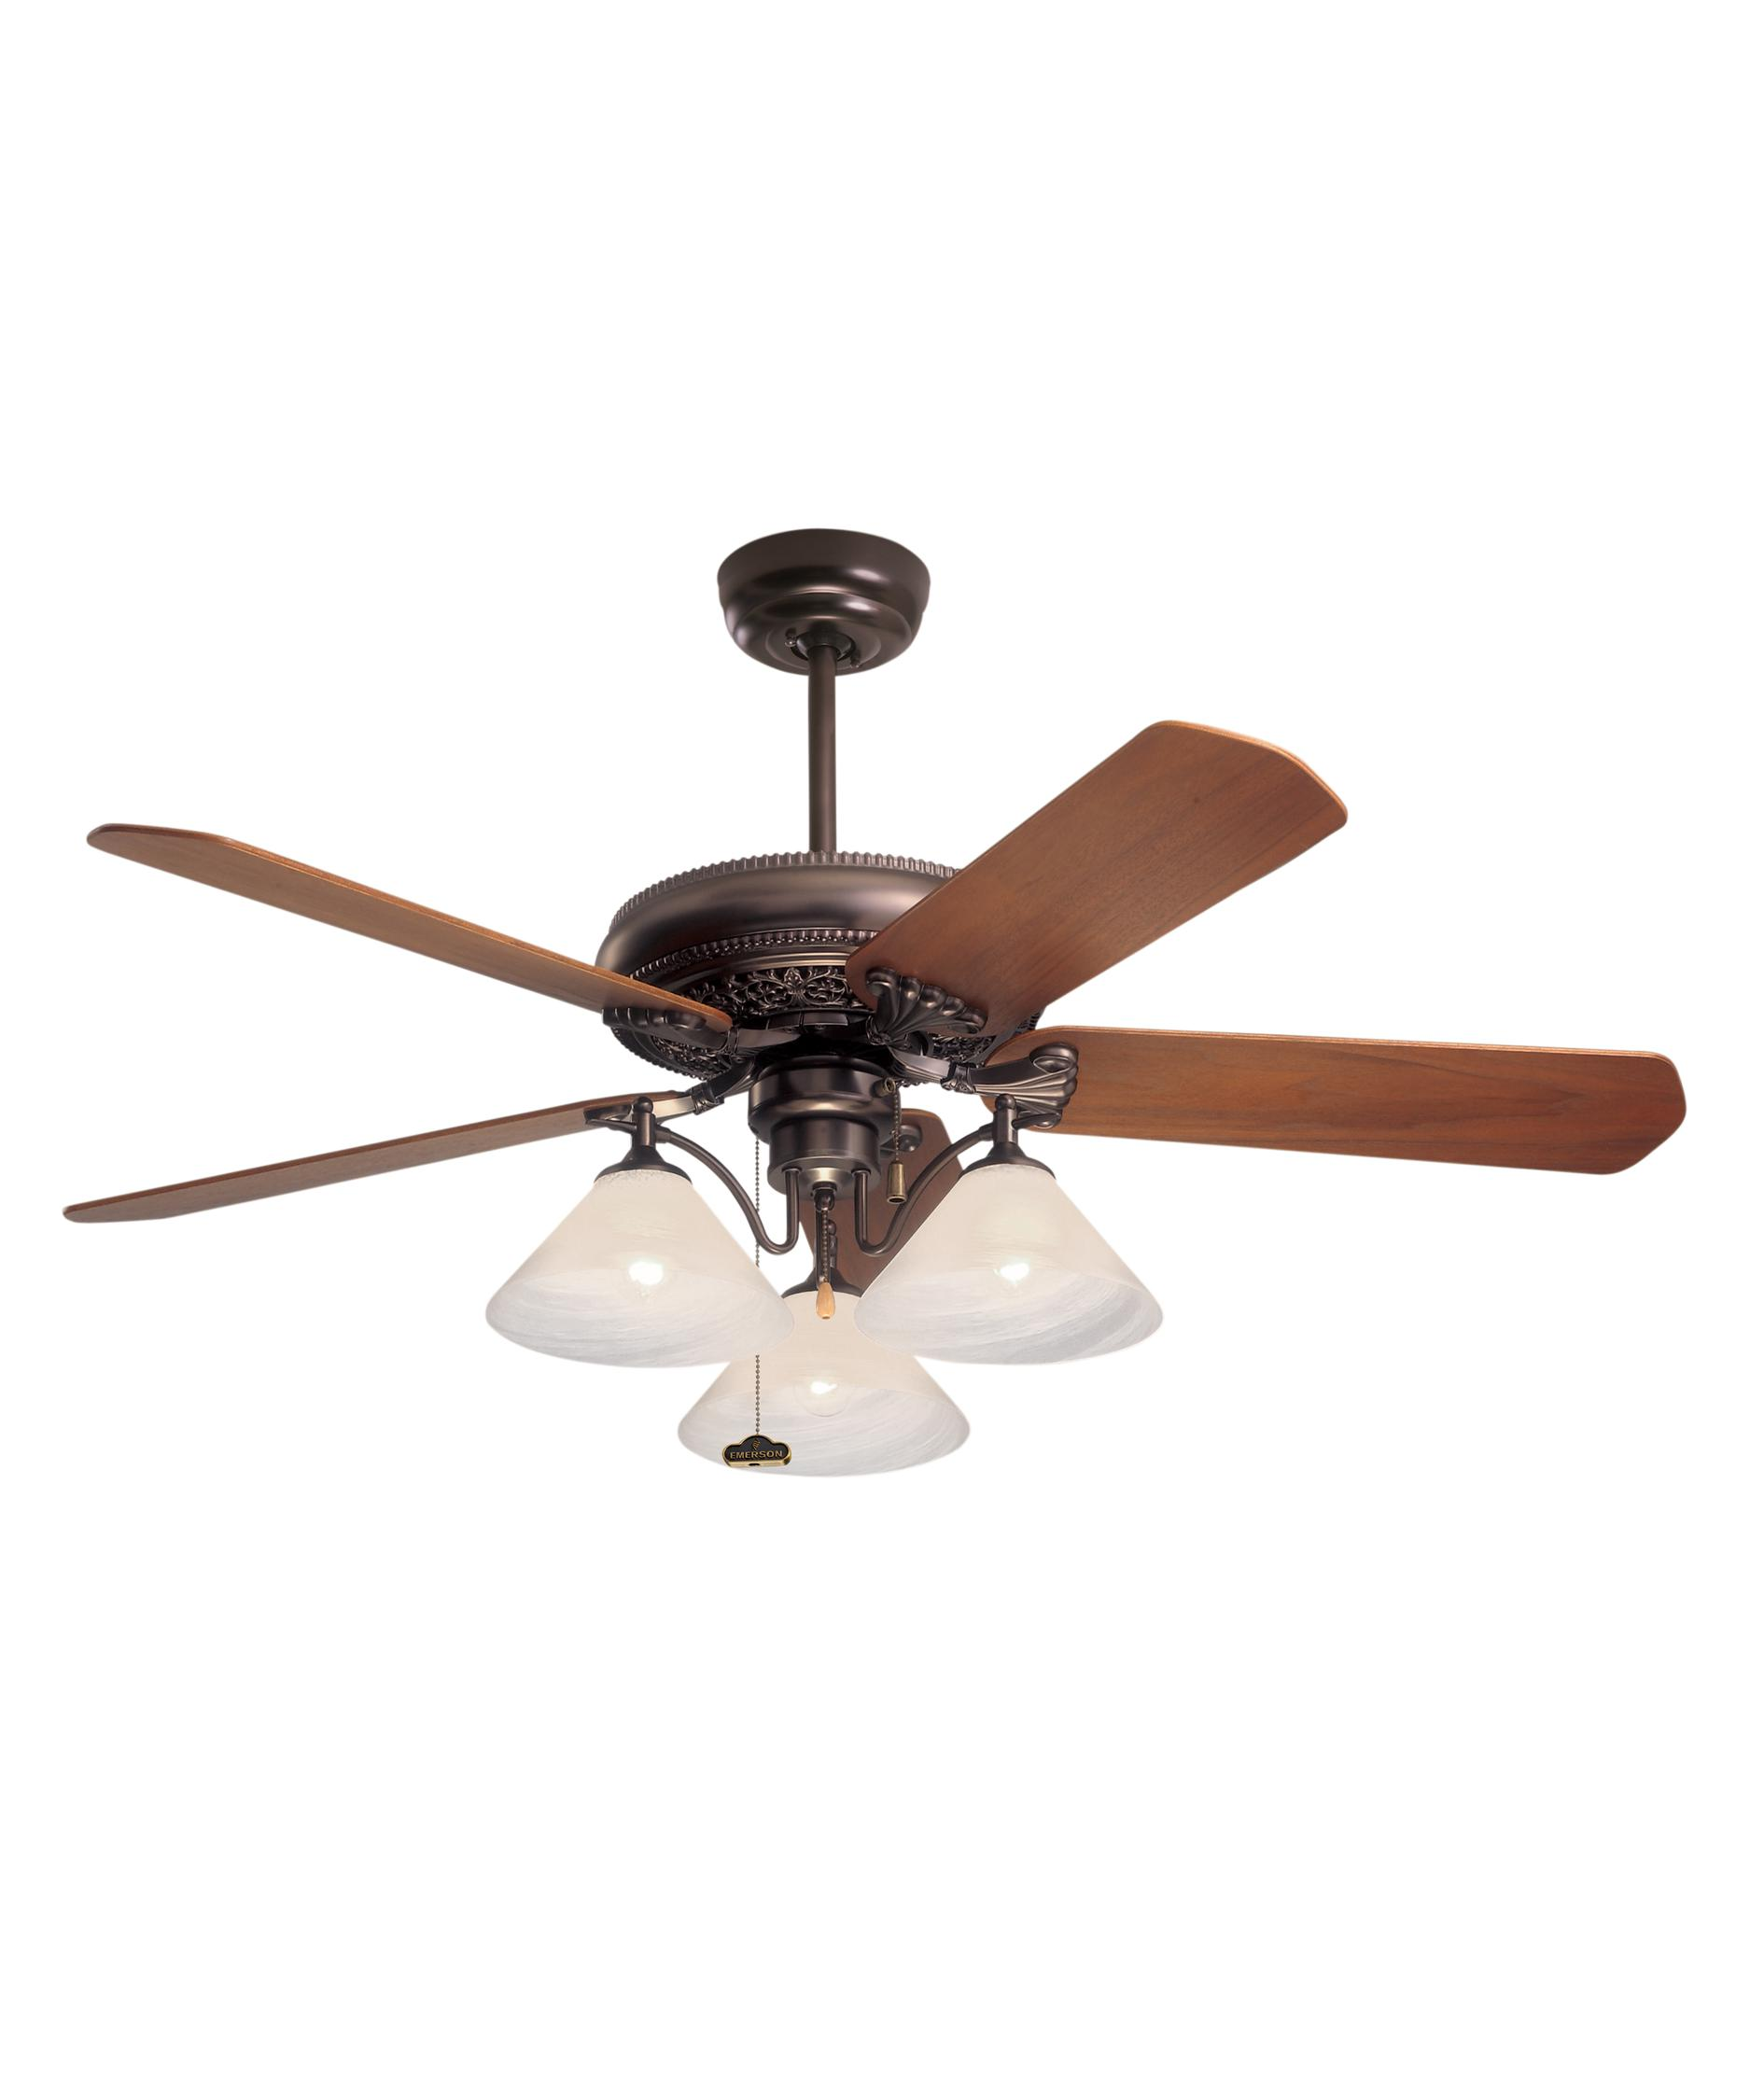 Murray Feiss Ceiling Fan Light Kit: Emerson CF4500 Crown 50 Inch Ceiling Fan With Light Kit